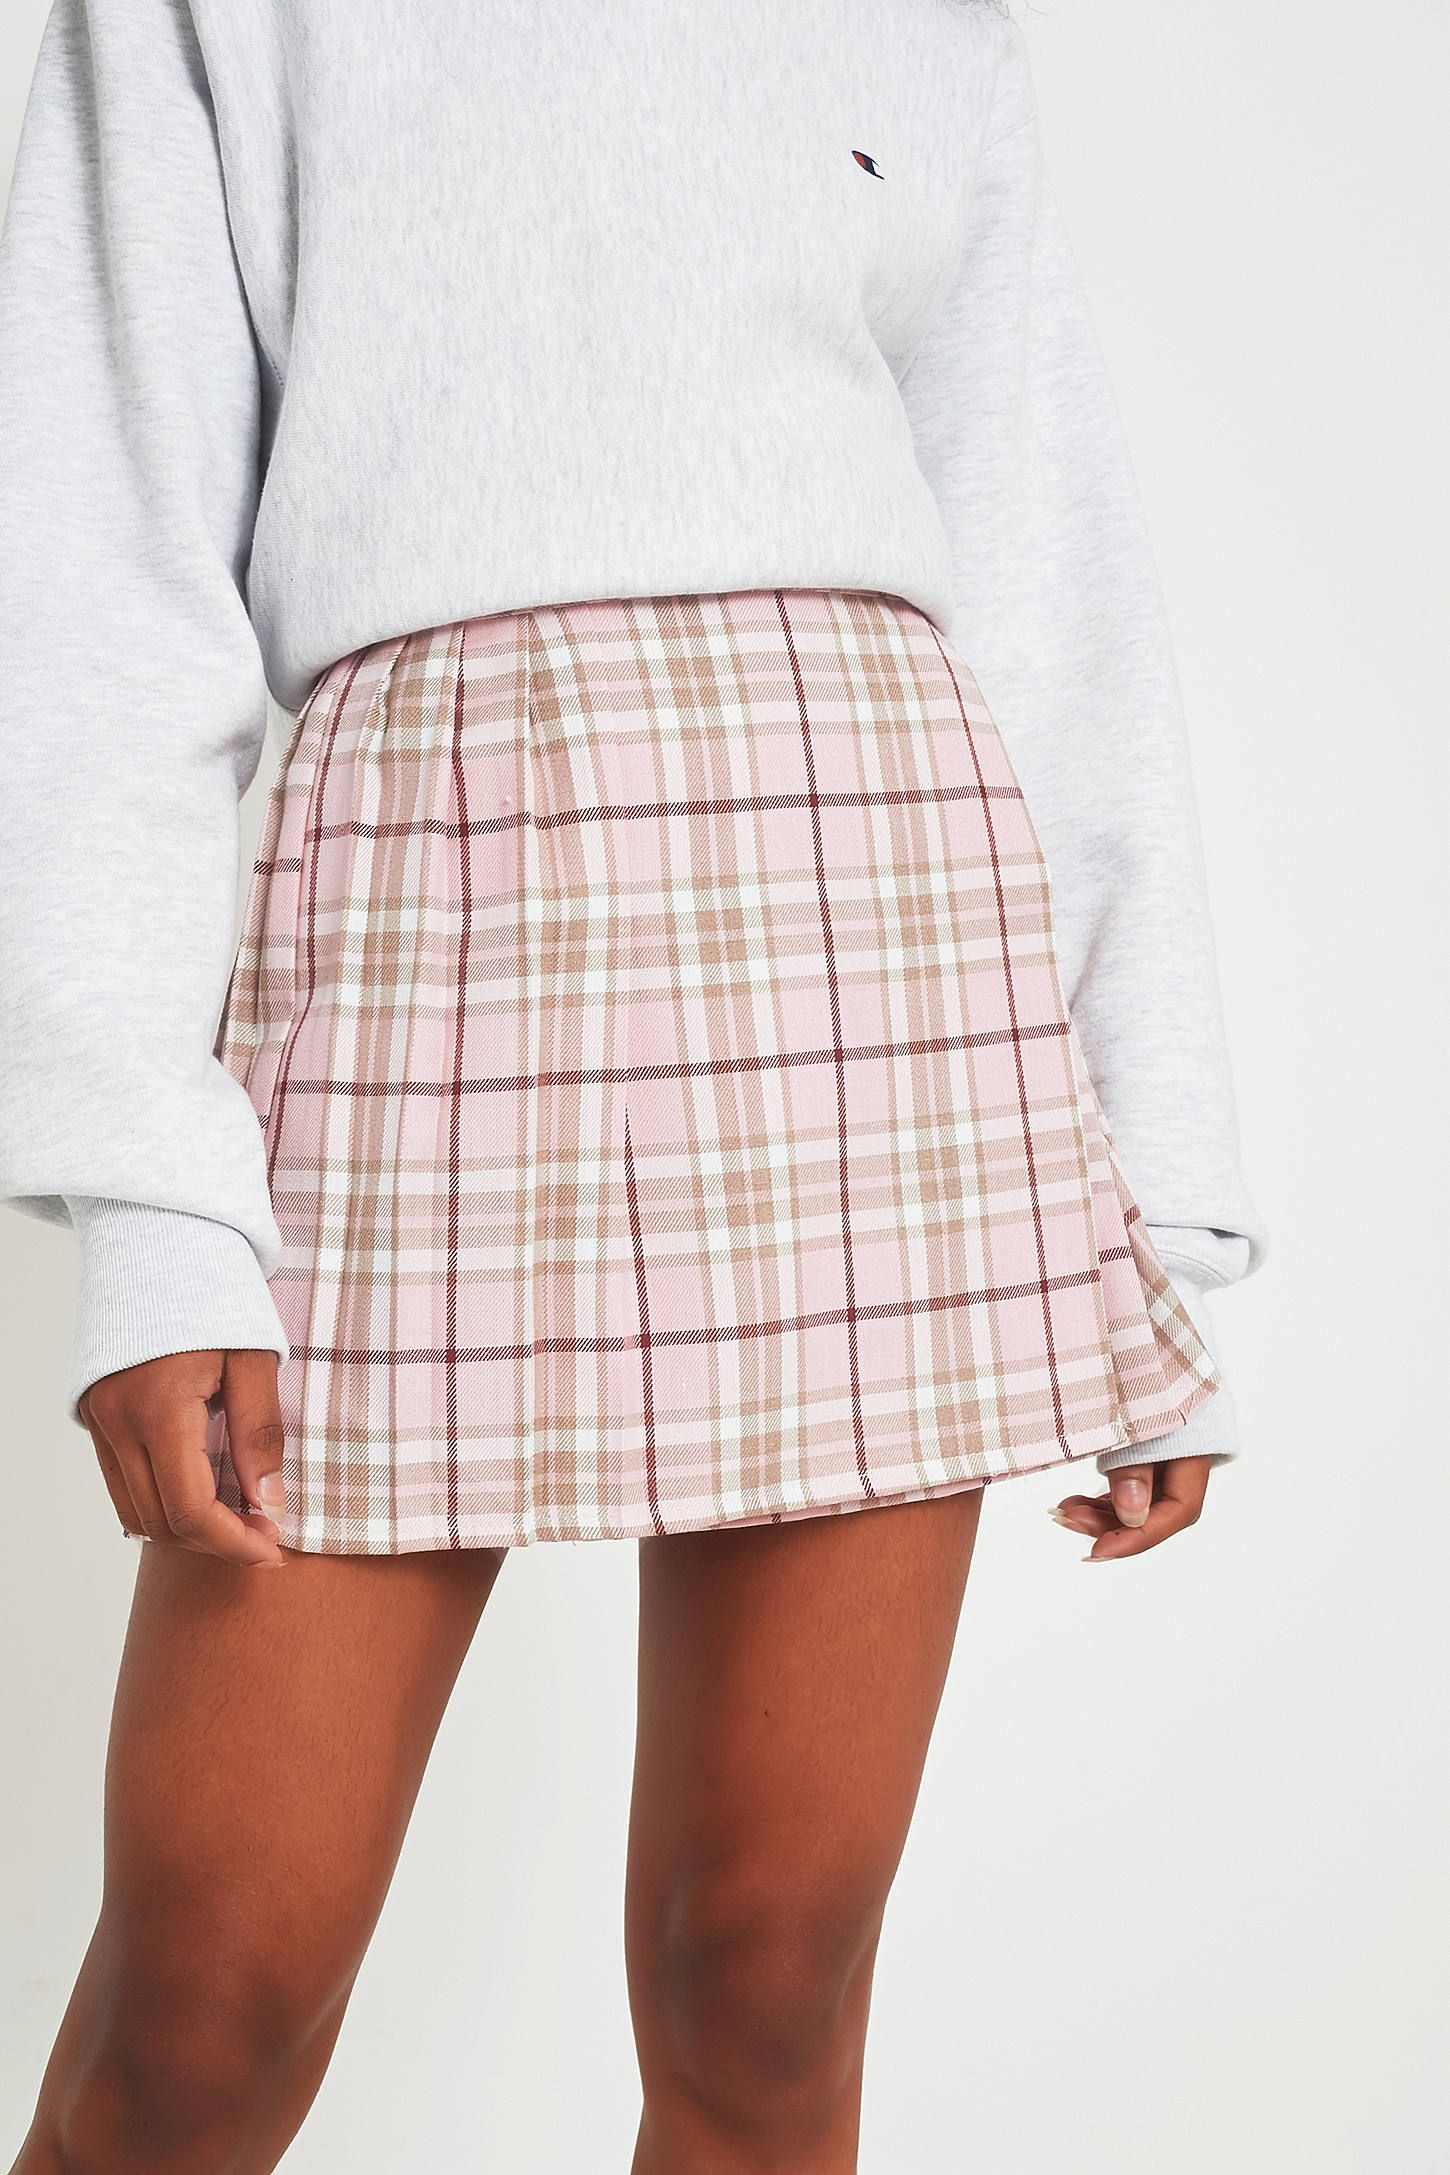 282da5267 Shop Urban Renewal Vintage Re-Made Pink Tartan Plaid Skirt at Urban  Outfitters today. We carry all the latest styles, colours and brands for  you to choose ...